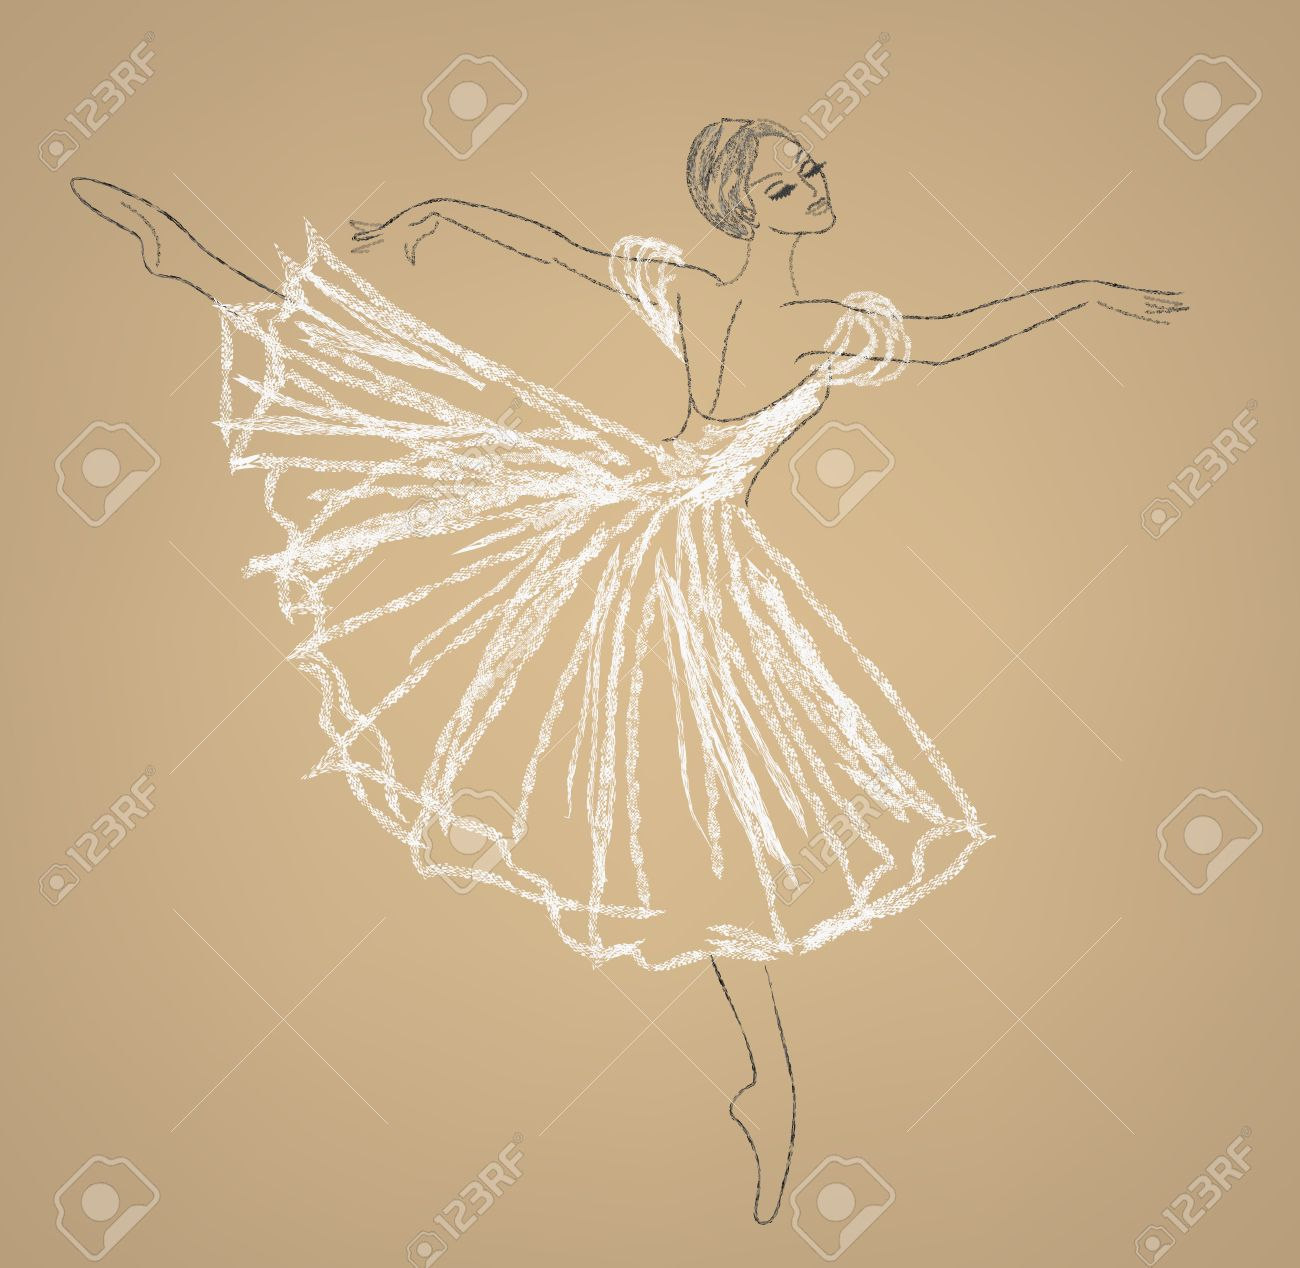 White dress drawing - Pencil Sketch Of Dancing Ballerina In White Dress Stock Vector 37705662